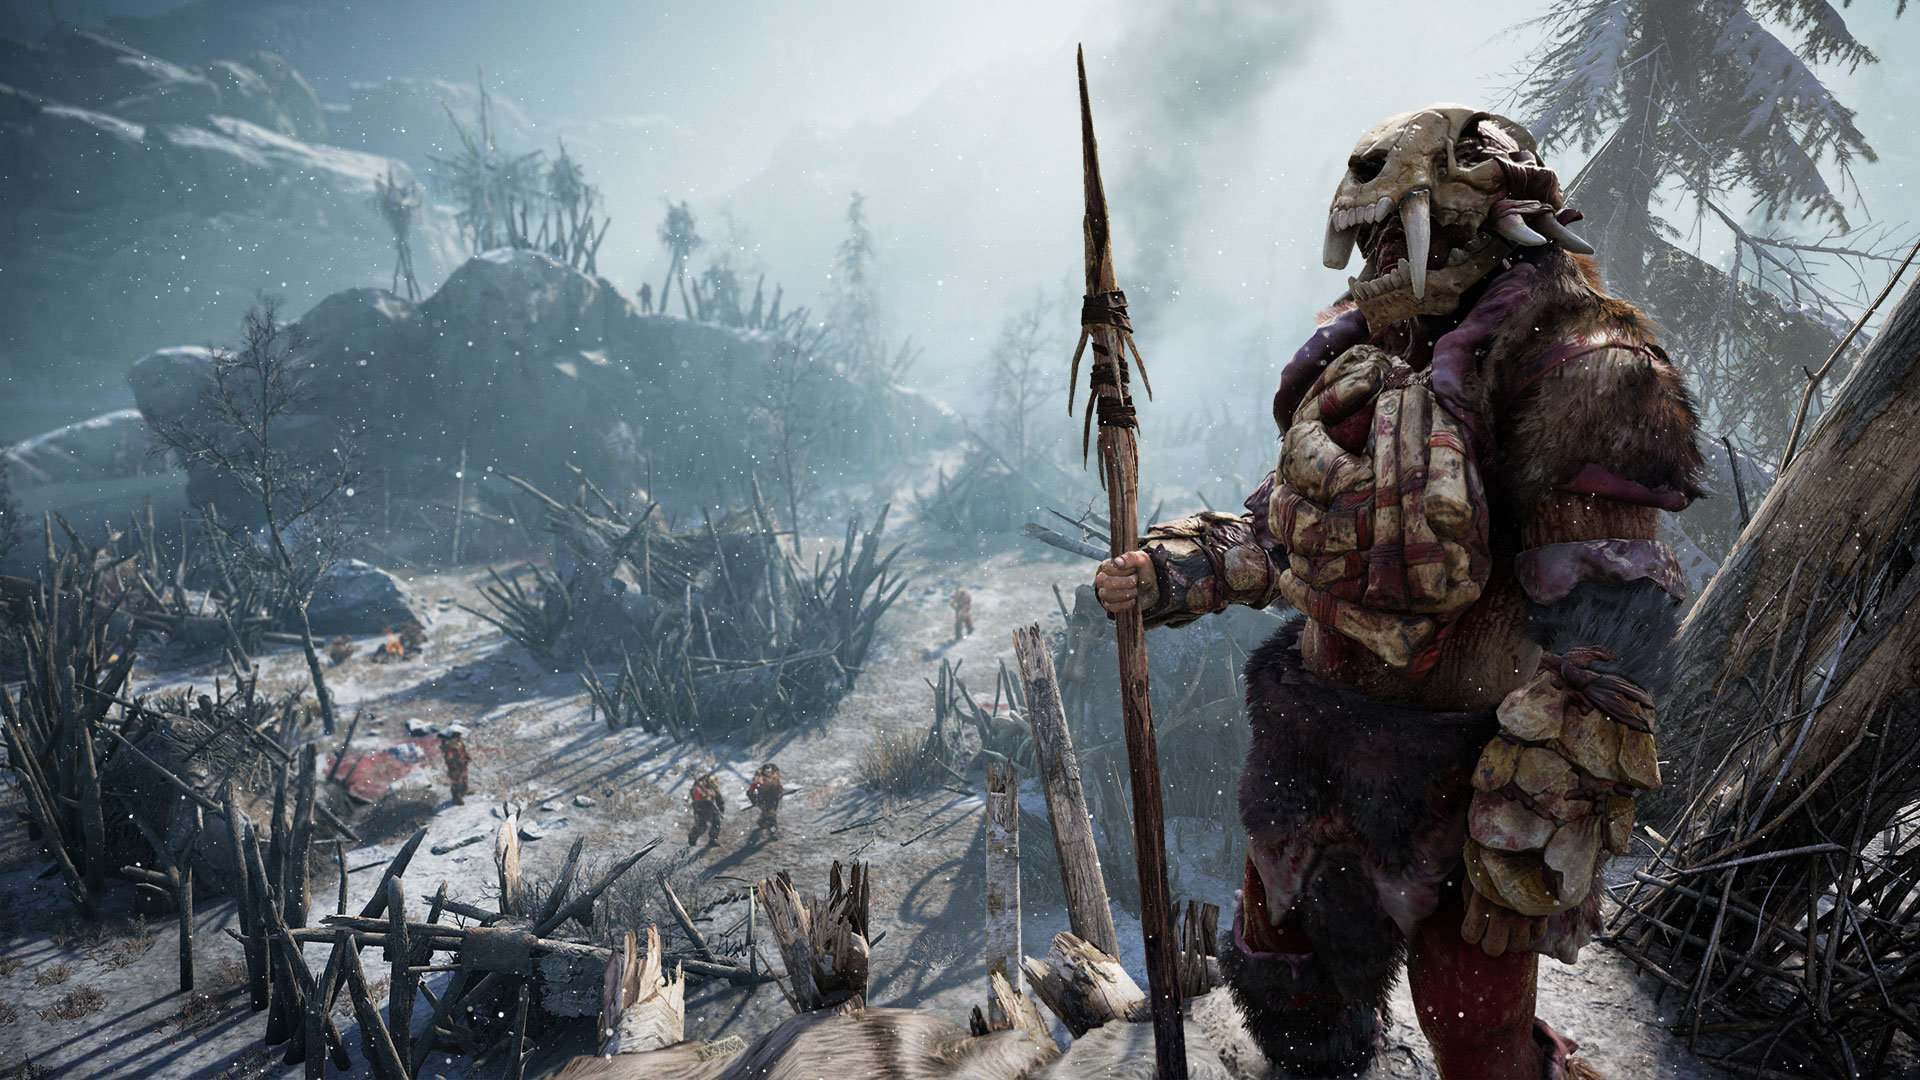 Far Cry Primal Wallpaper: Excellent Far Cry Primal Wallpaper